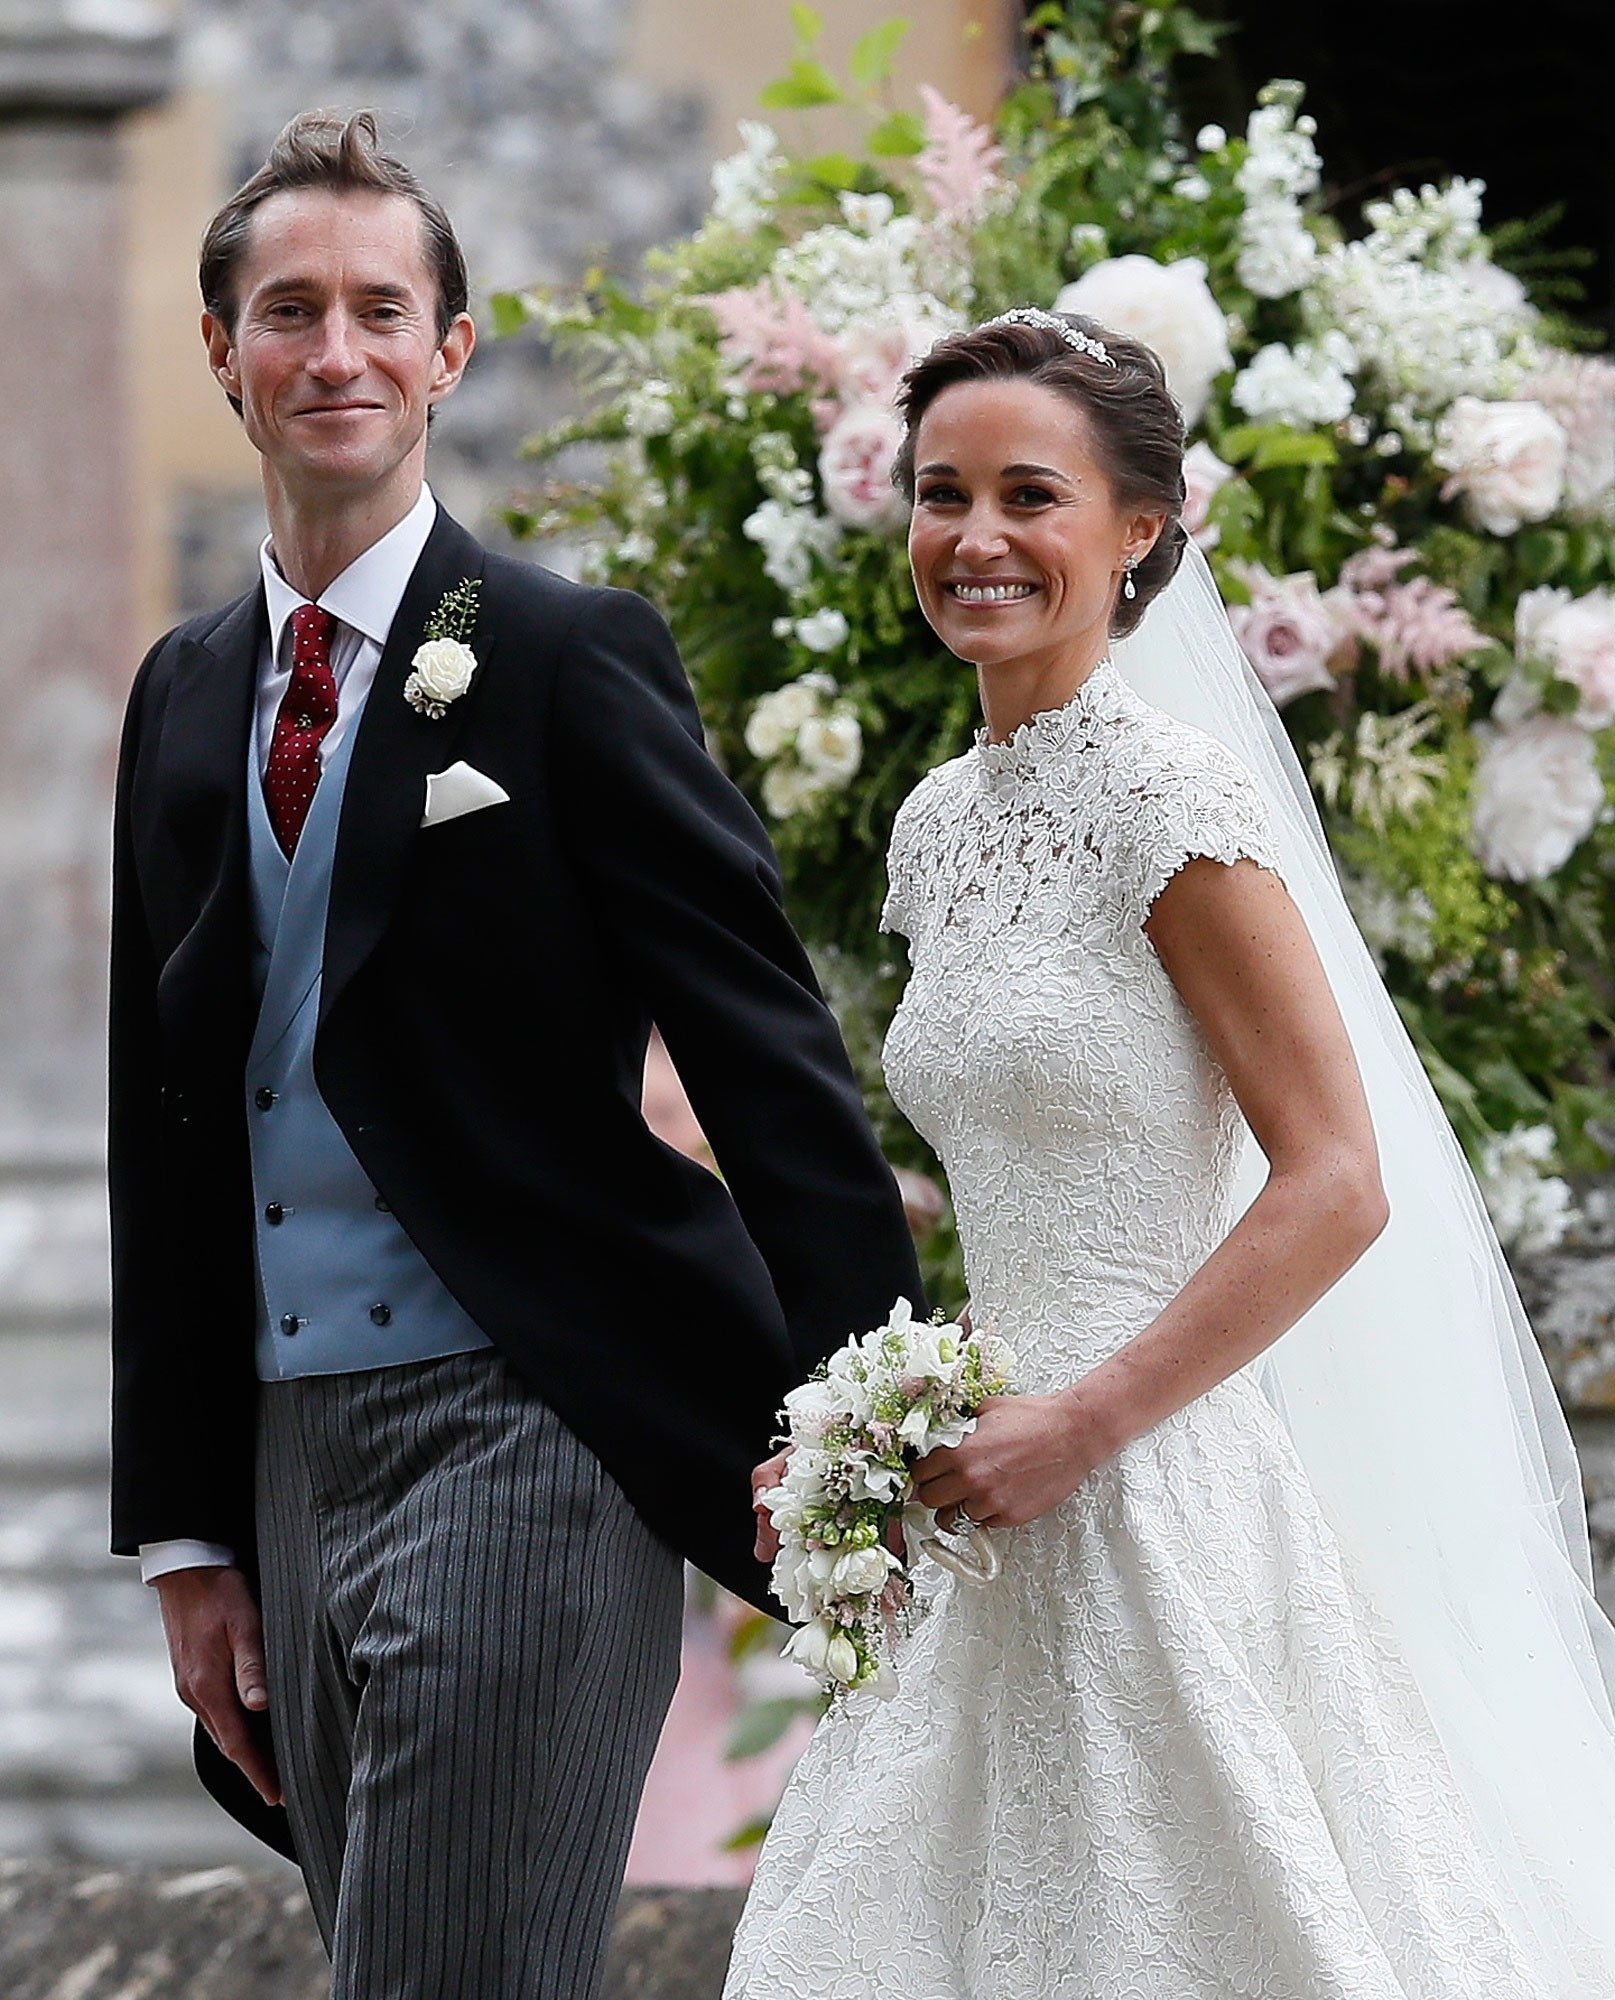 Pippa Middletons Wedding Lets Take A Moment To Review Where Meghan Markle Was This Weekend